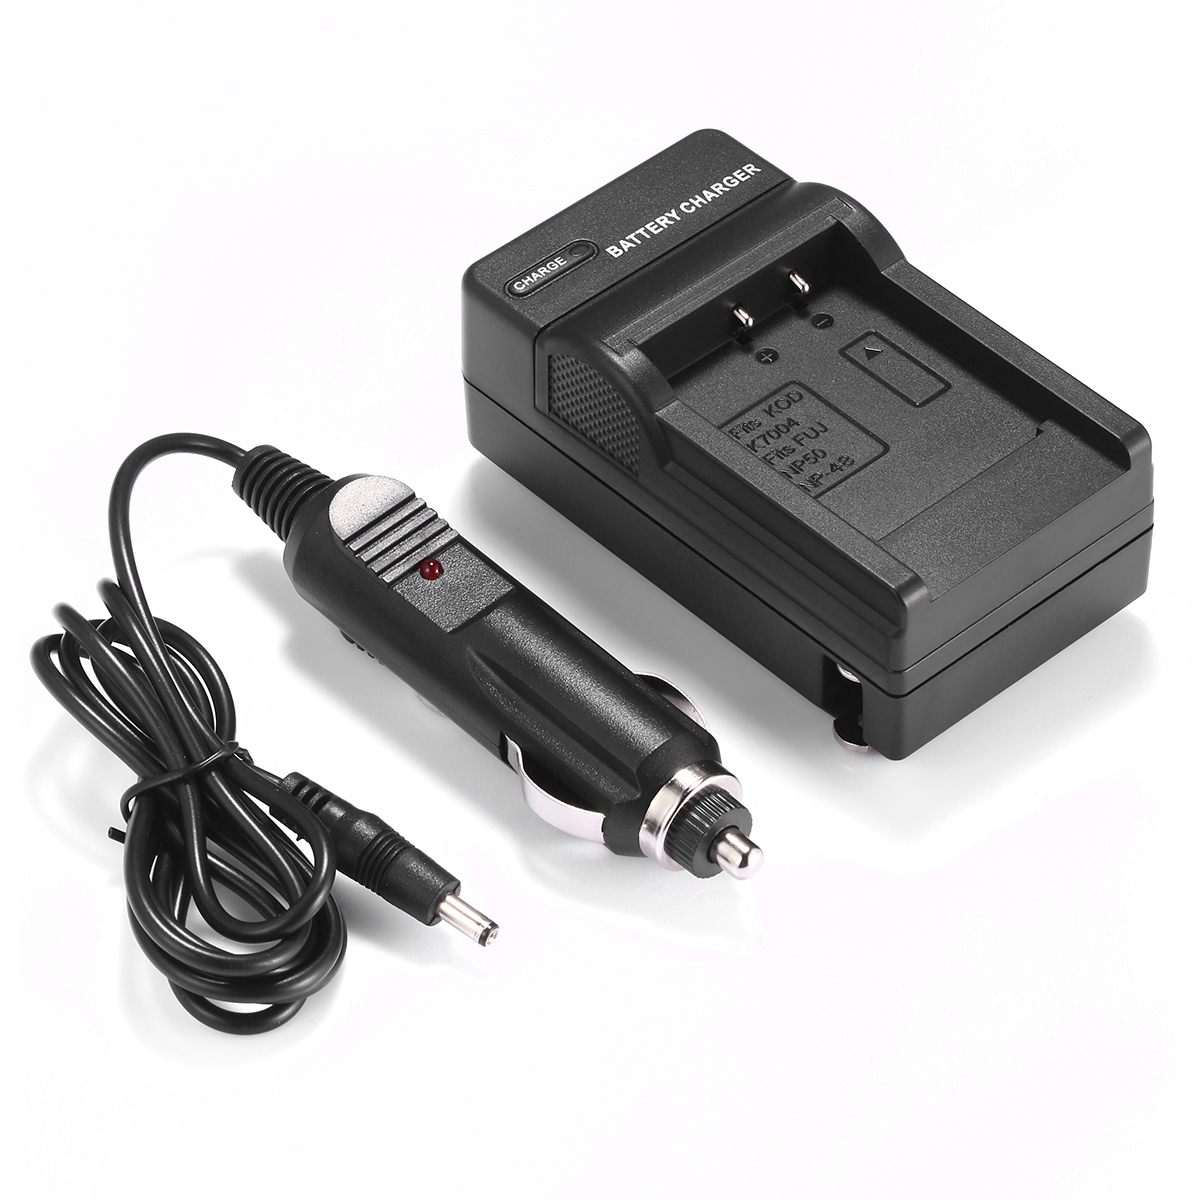 Np 50 Np 50a Battery Charger For Fujifilm Finepix Xf1